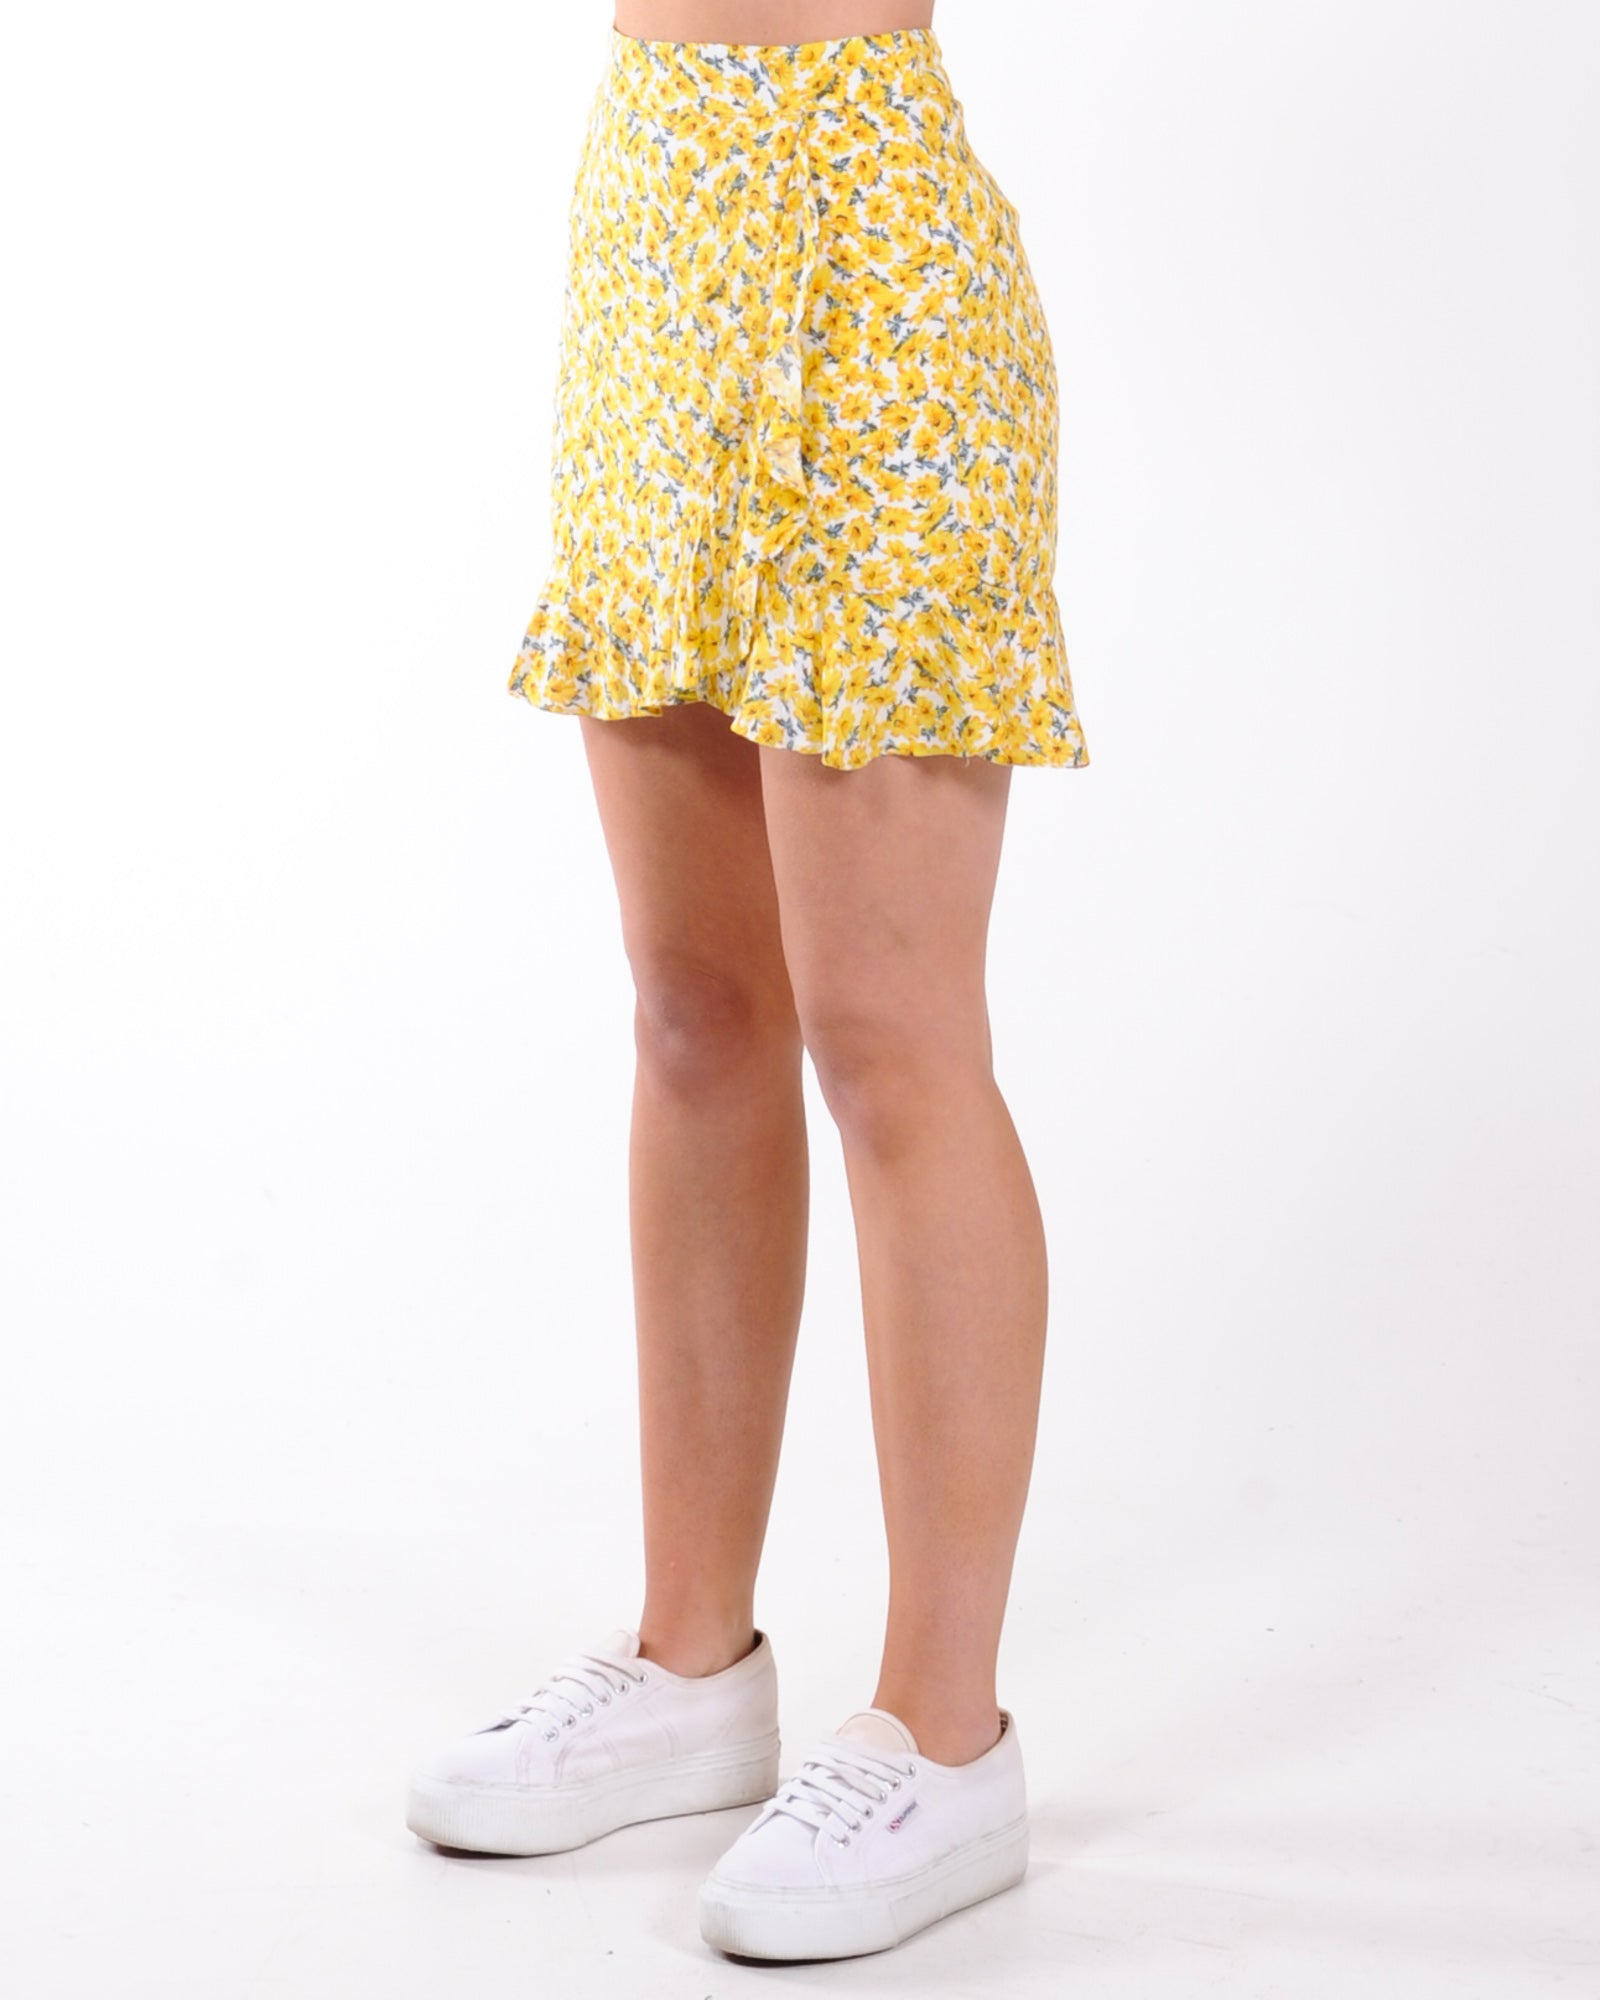 Sunflower Fields Skirt - Yellow